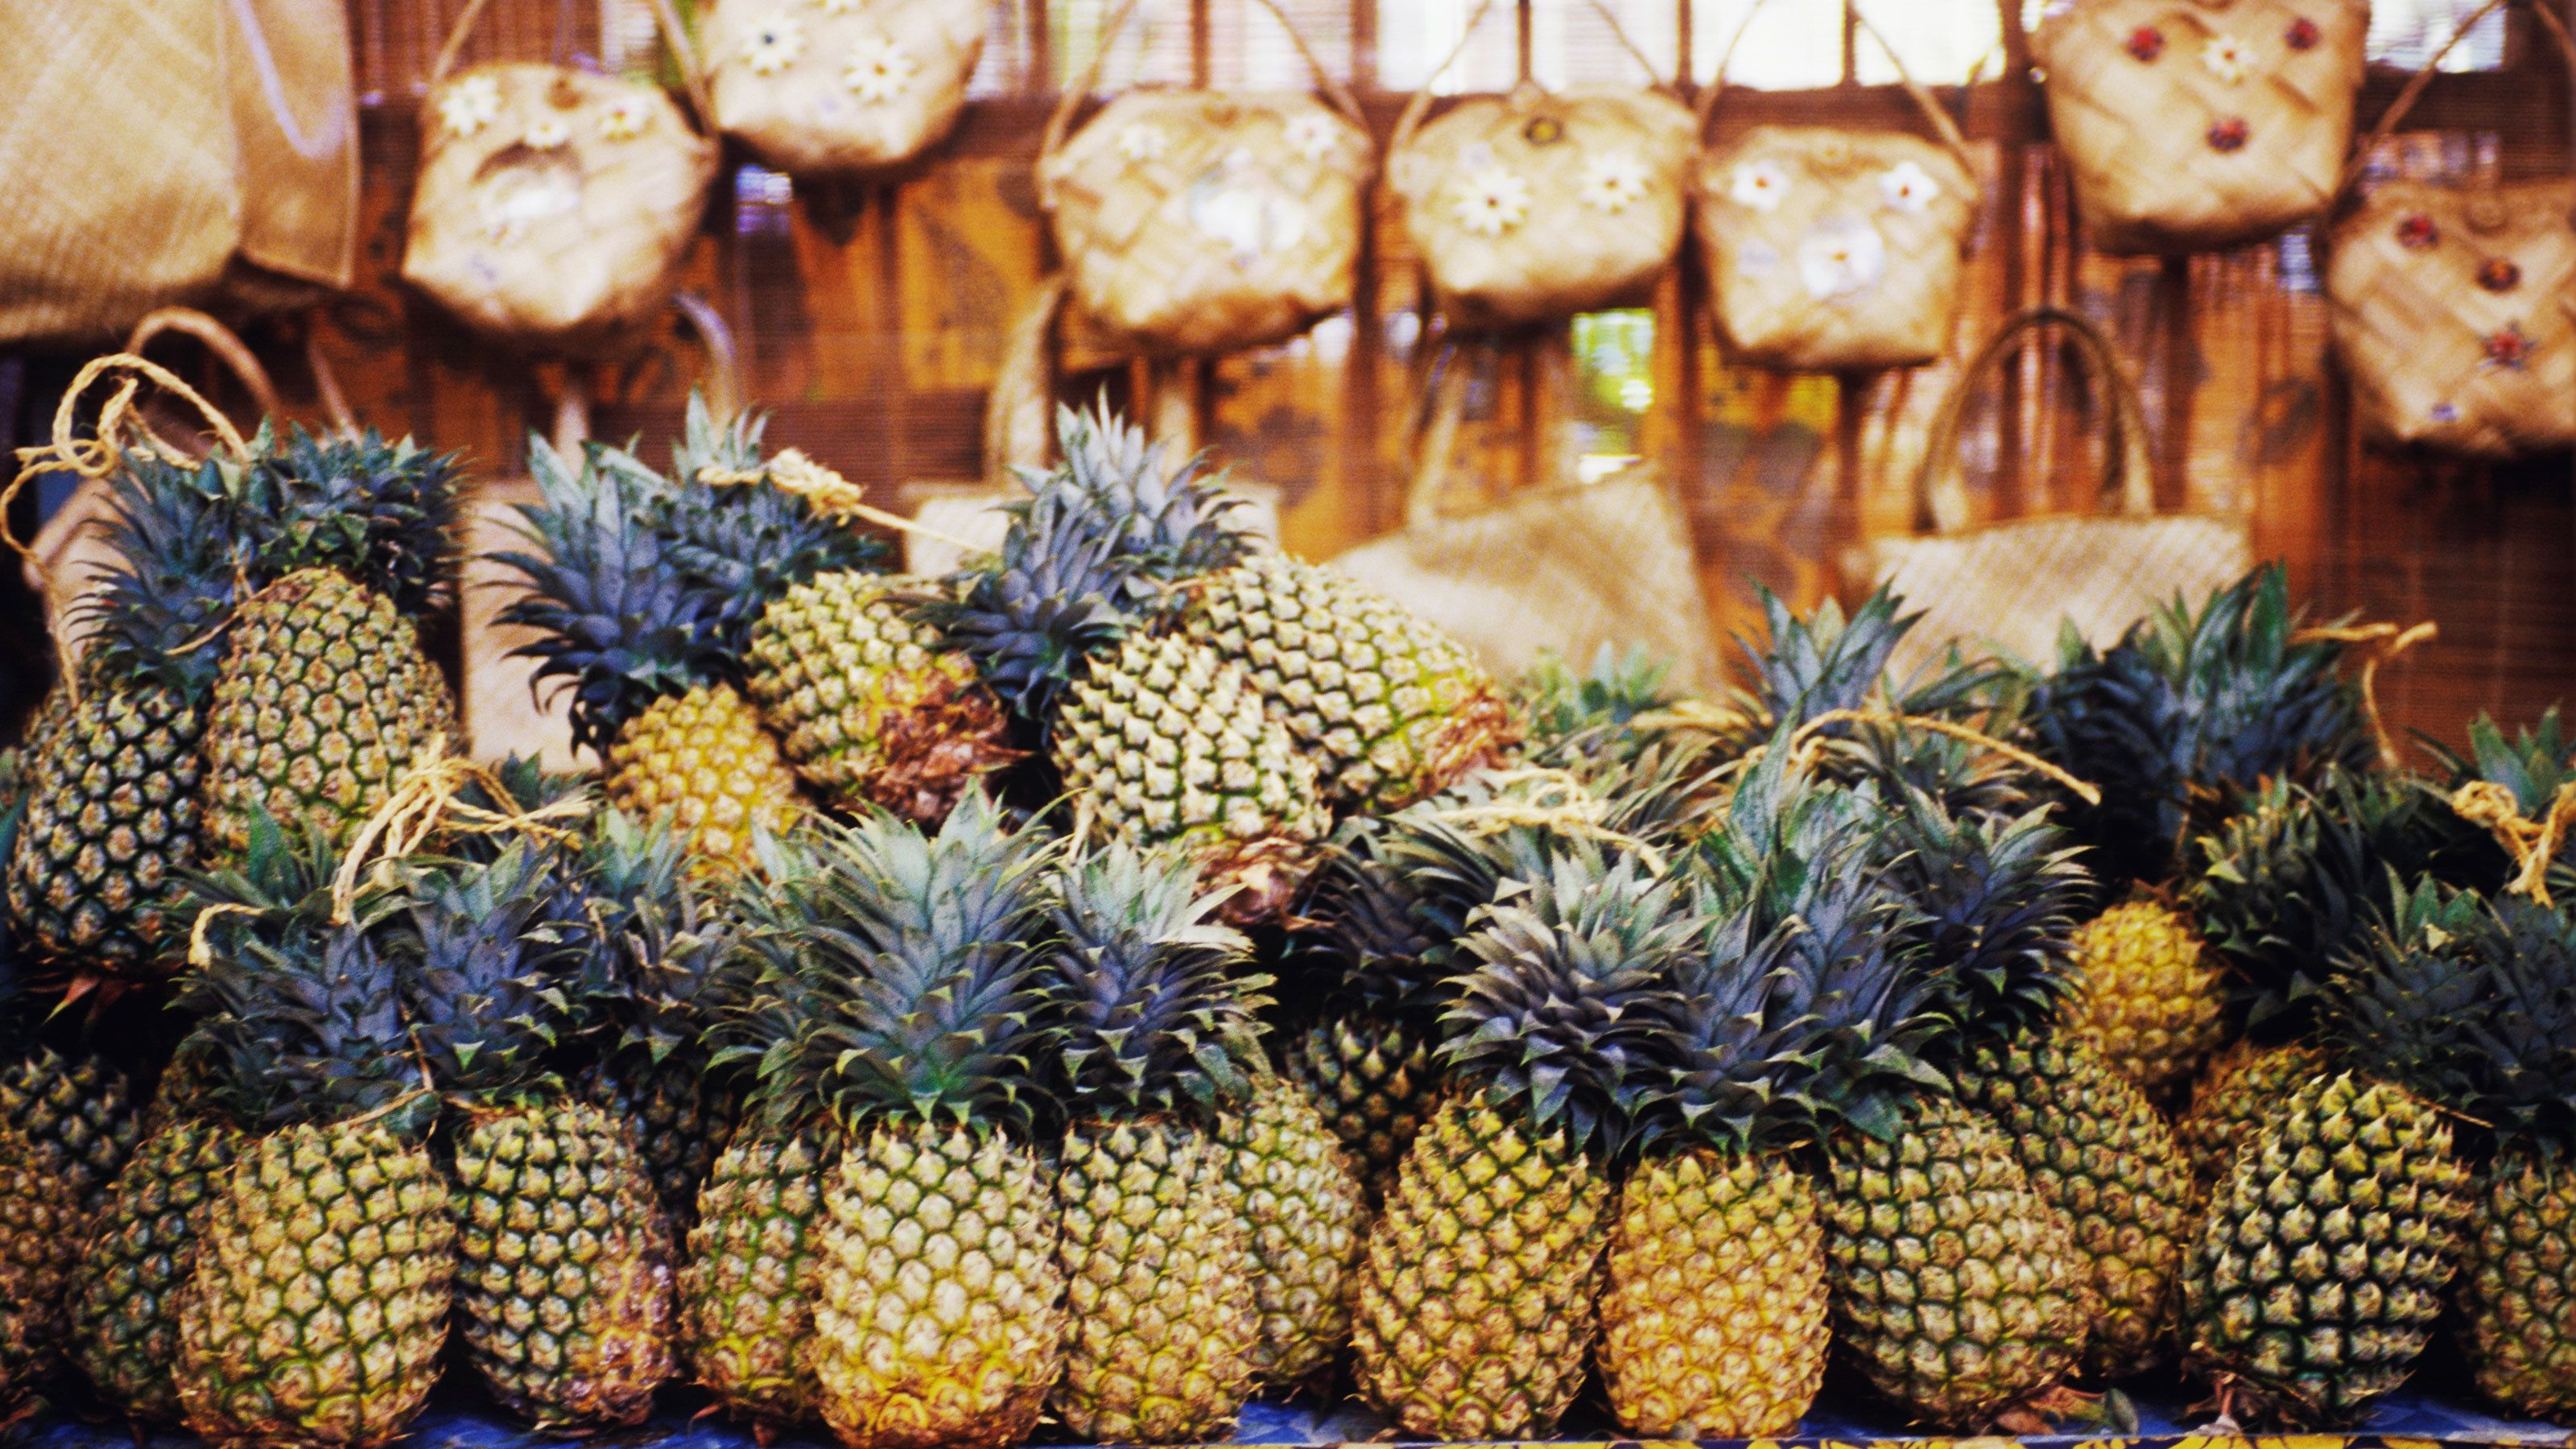 Guided Pineapple Tour